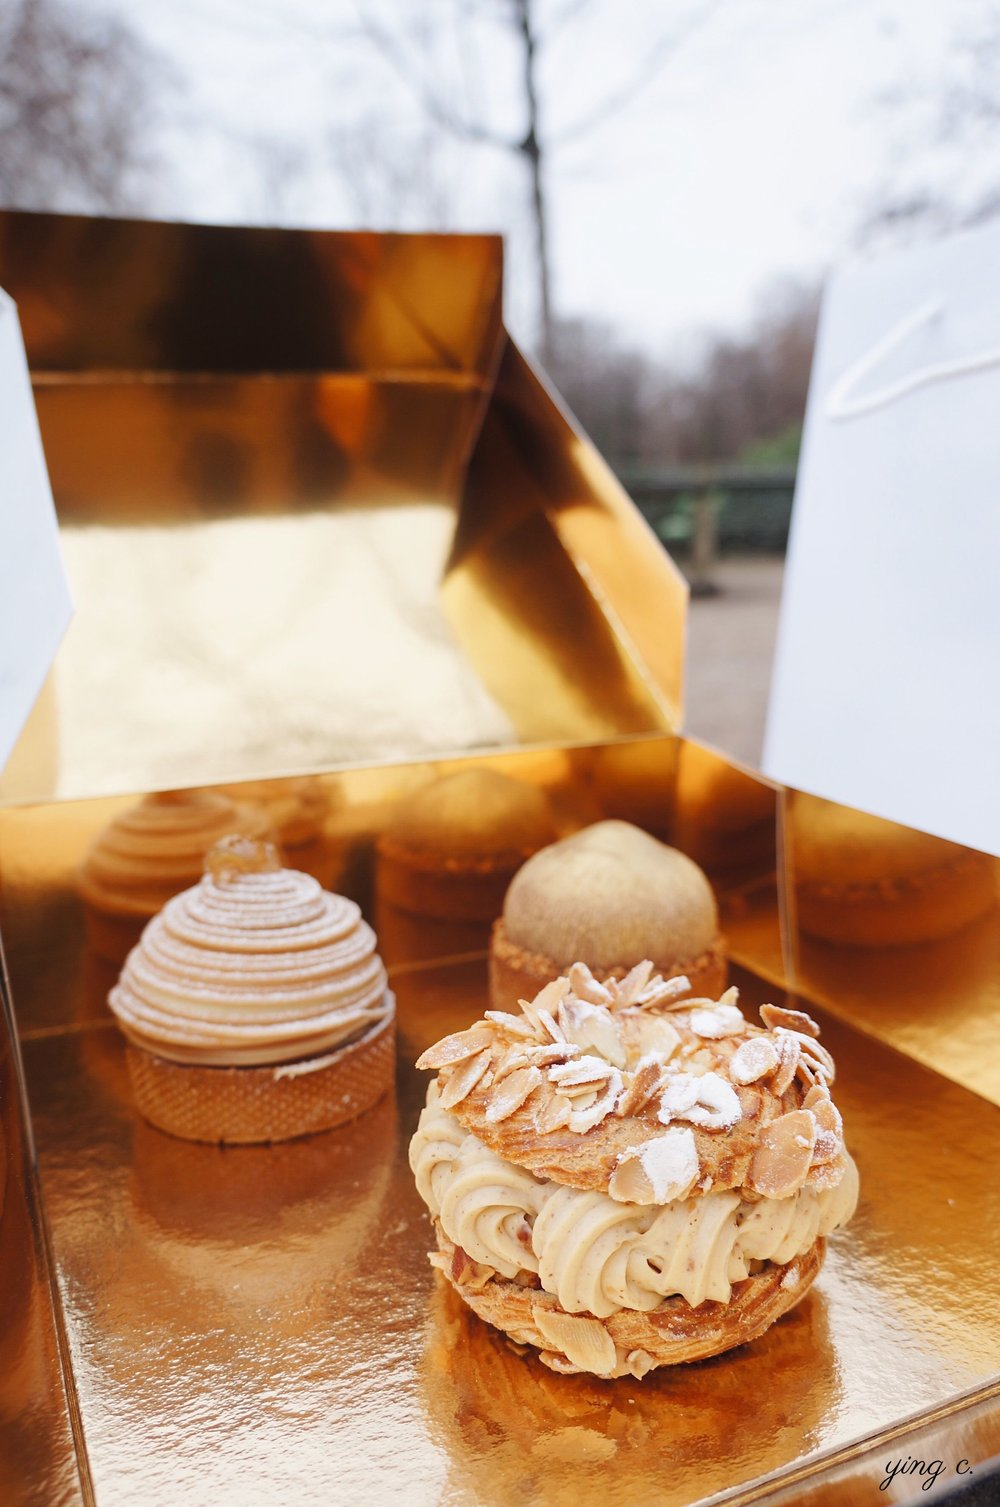 (from right to left and back to front): Tarte Mont-Blanc, Tarte Noisette, and Paris-Brest.